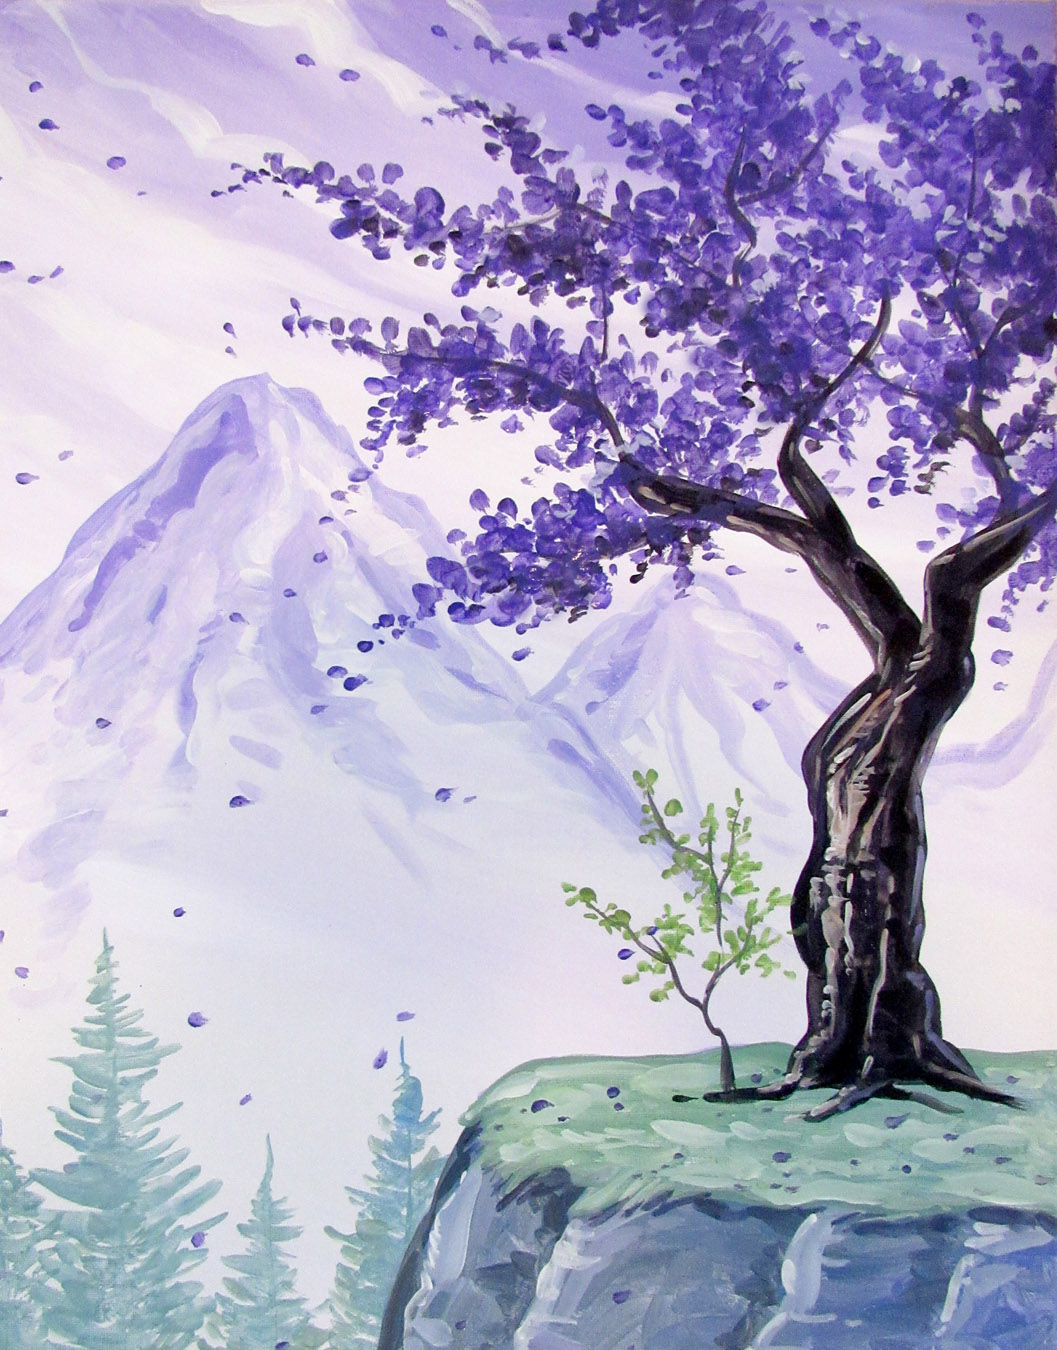 Orchid thai midtown sacramento 11 18 2017 paint nite event for Acrylic mural paint